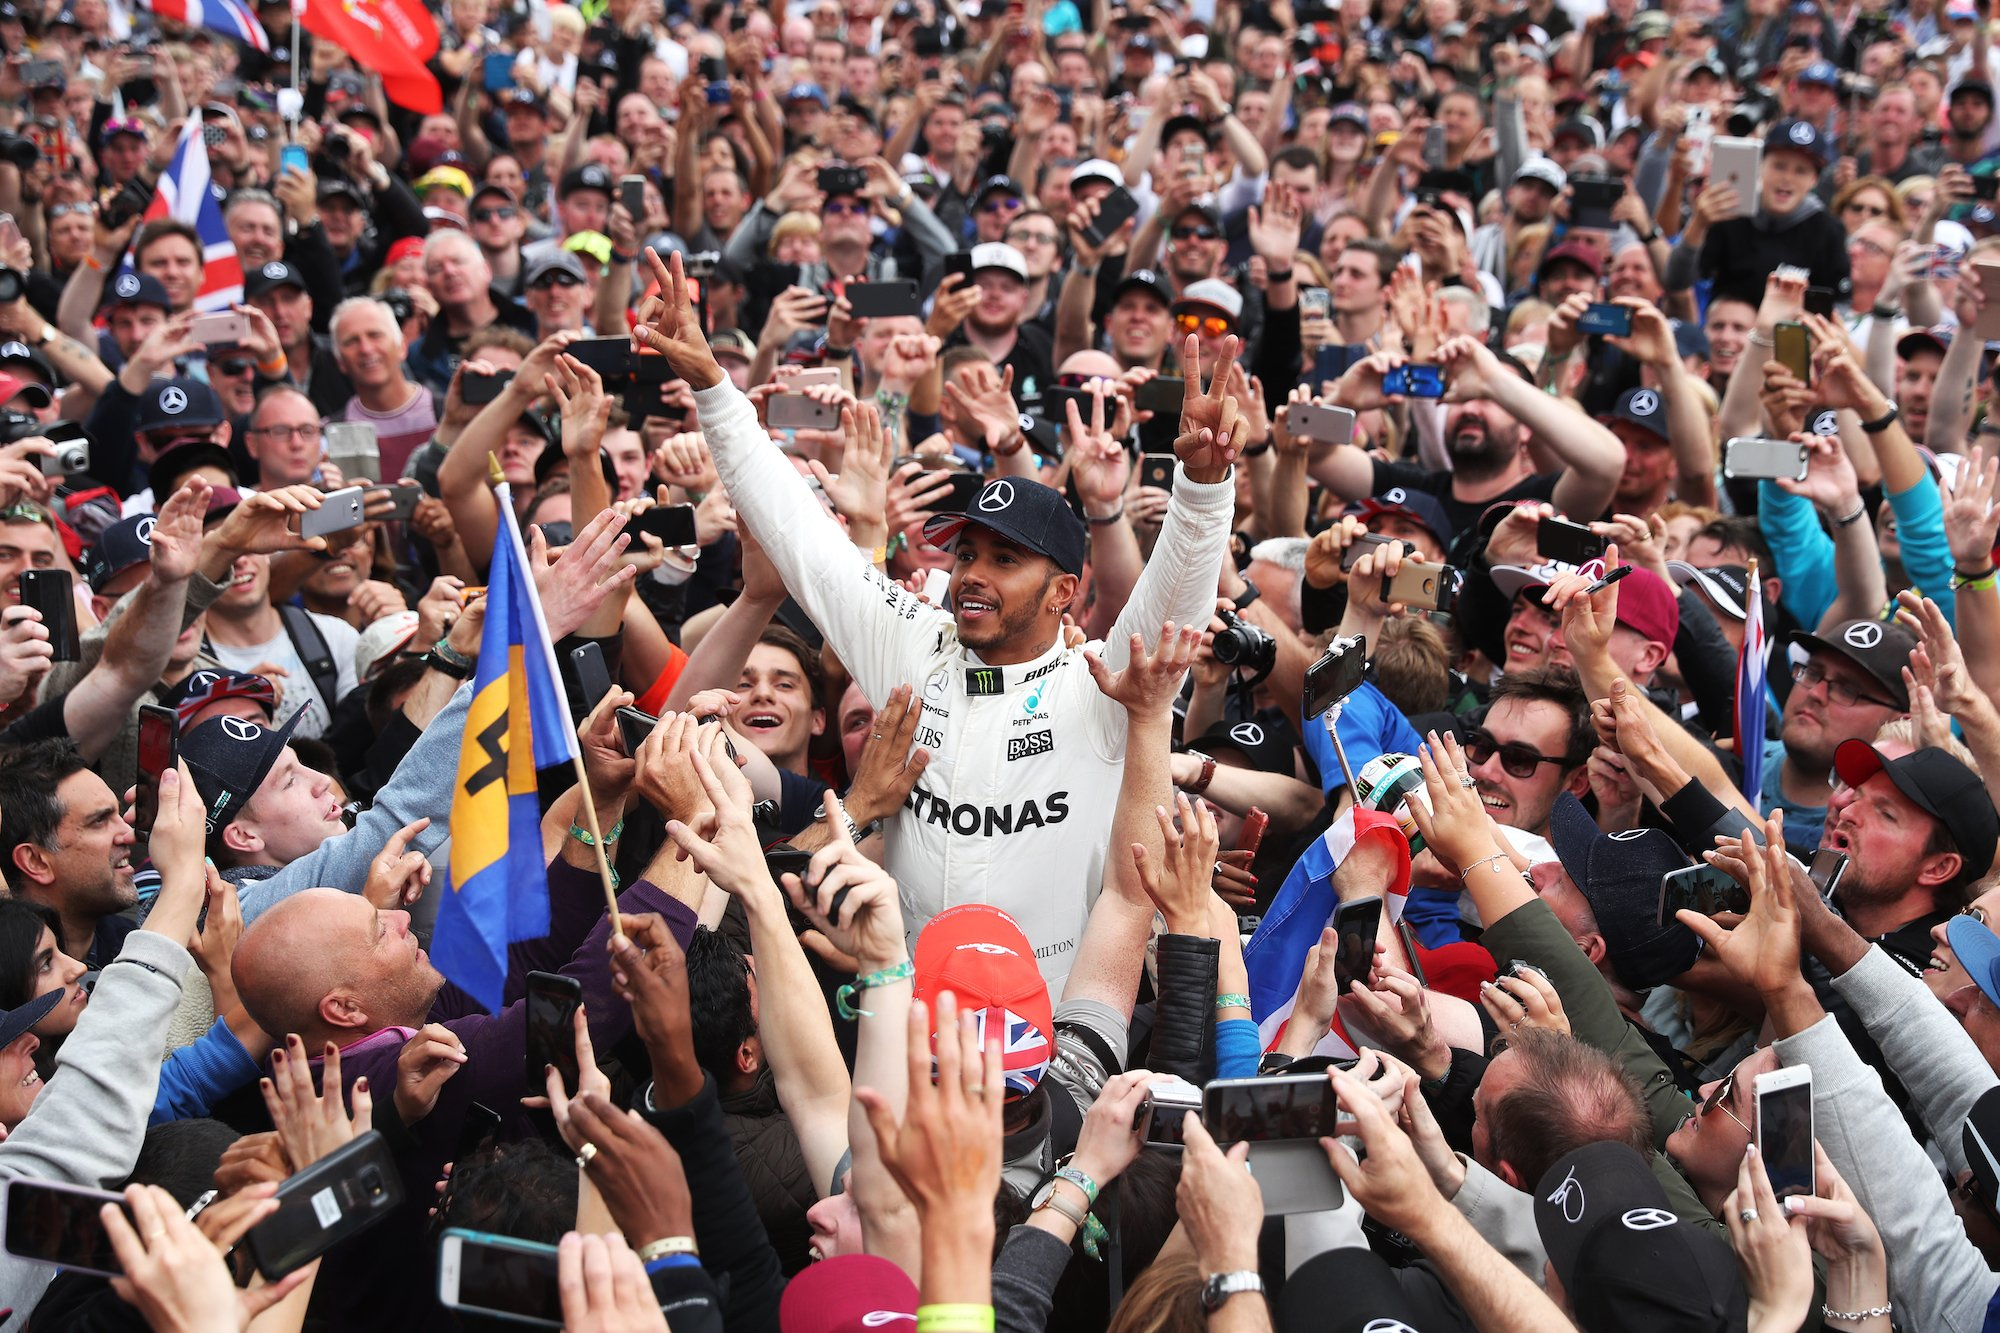 British Grand Prix to take place after Wimbledon and Euros in 2021